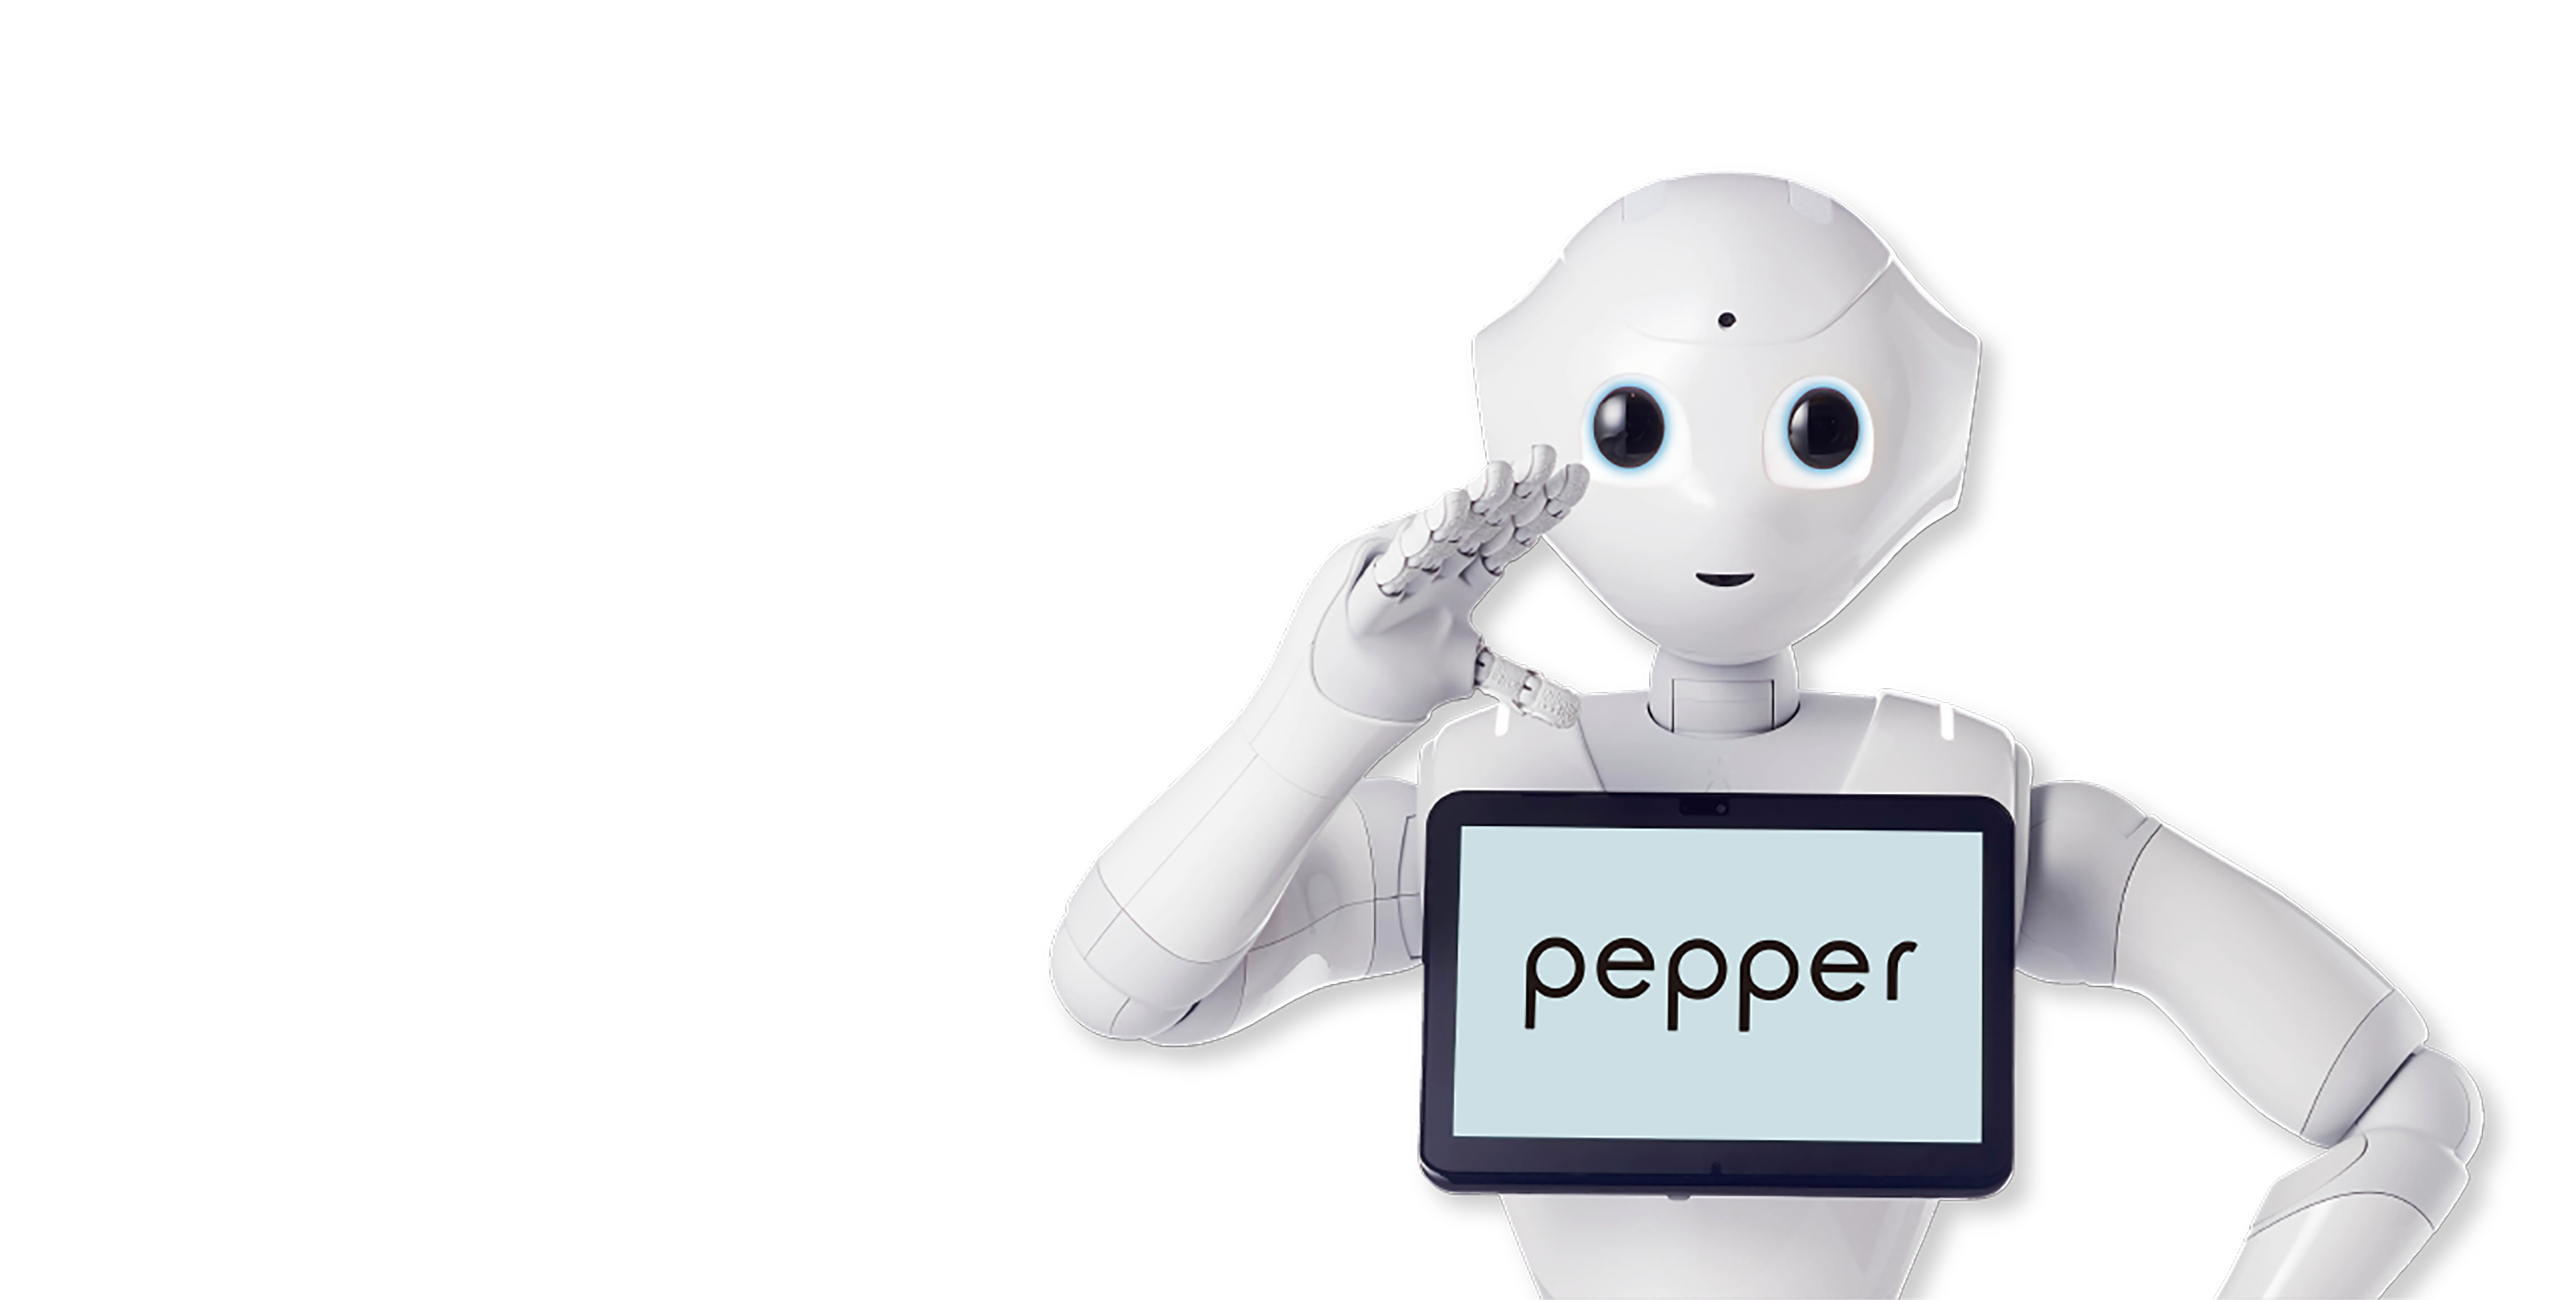 Pepper character